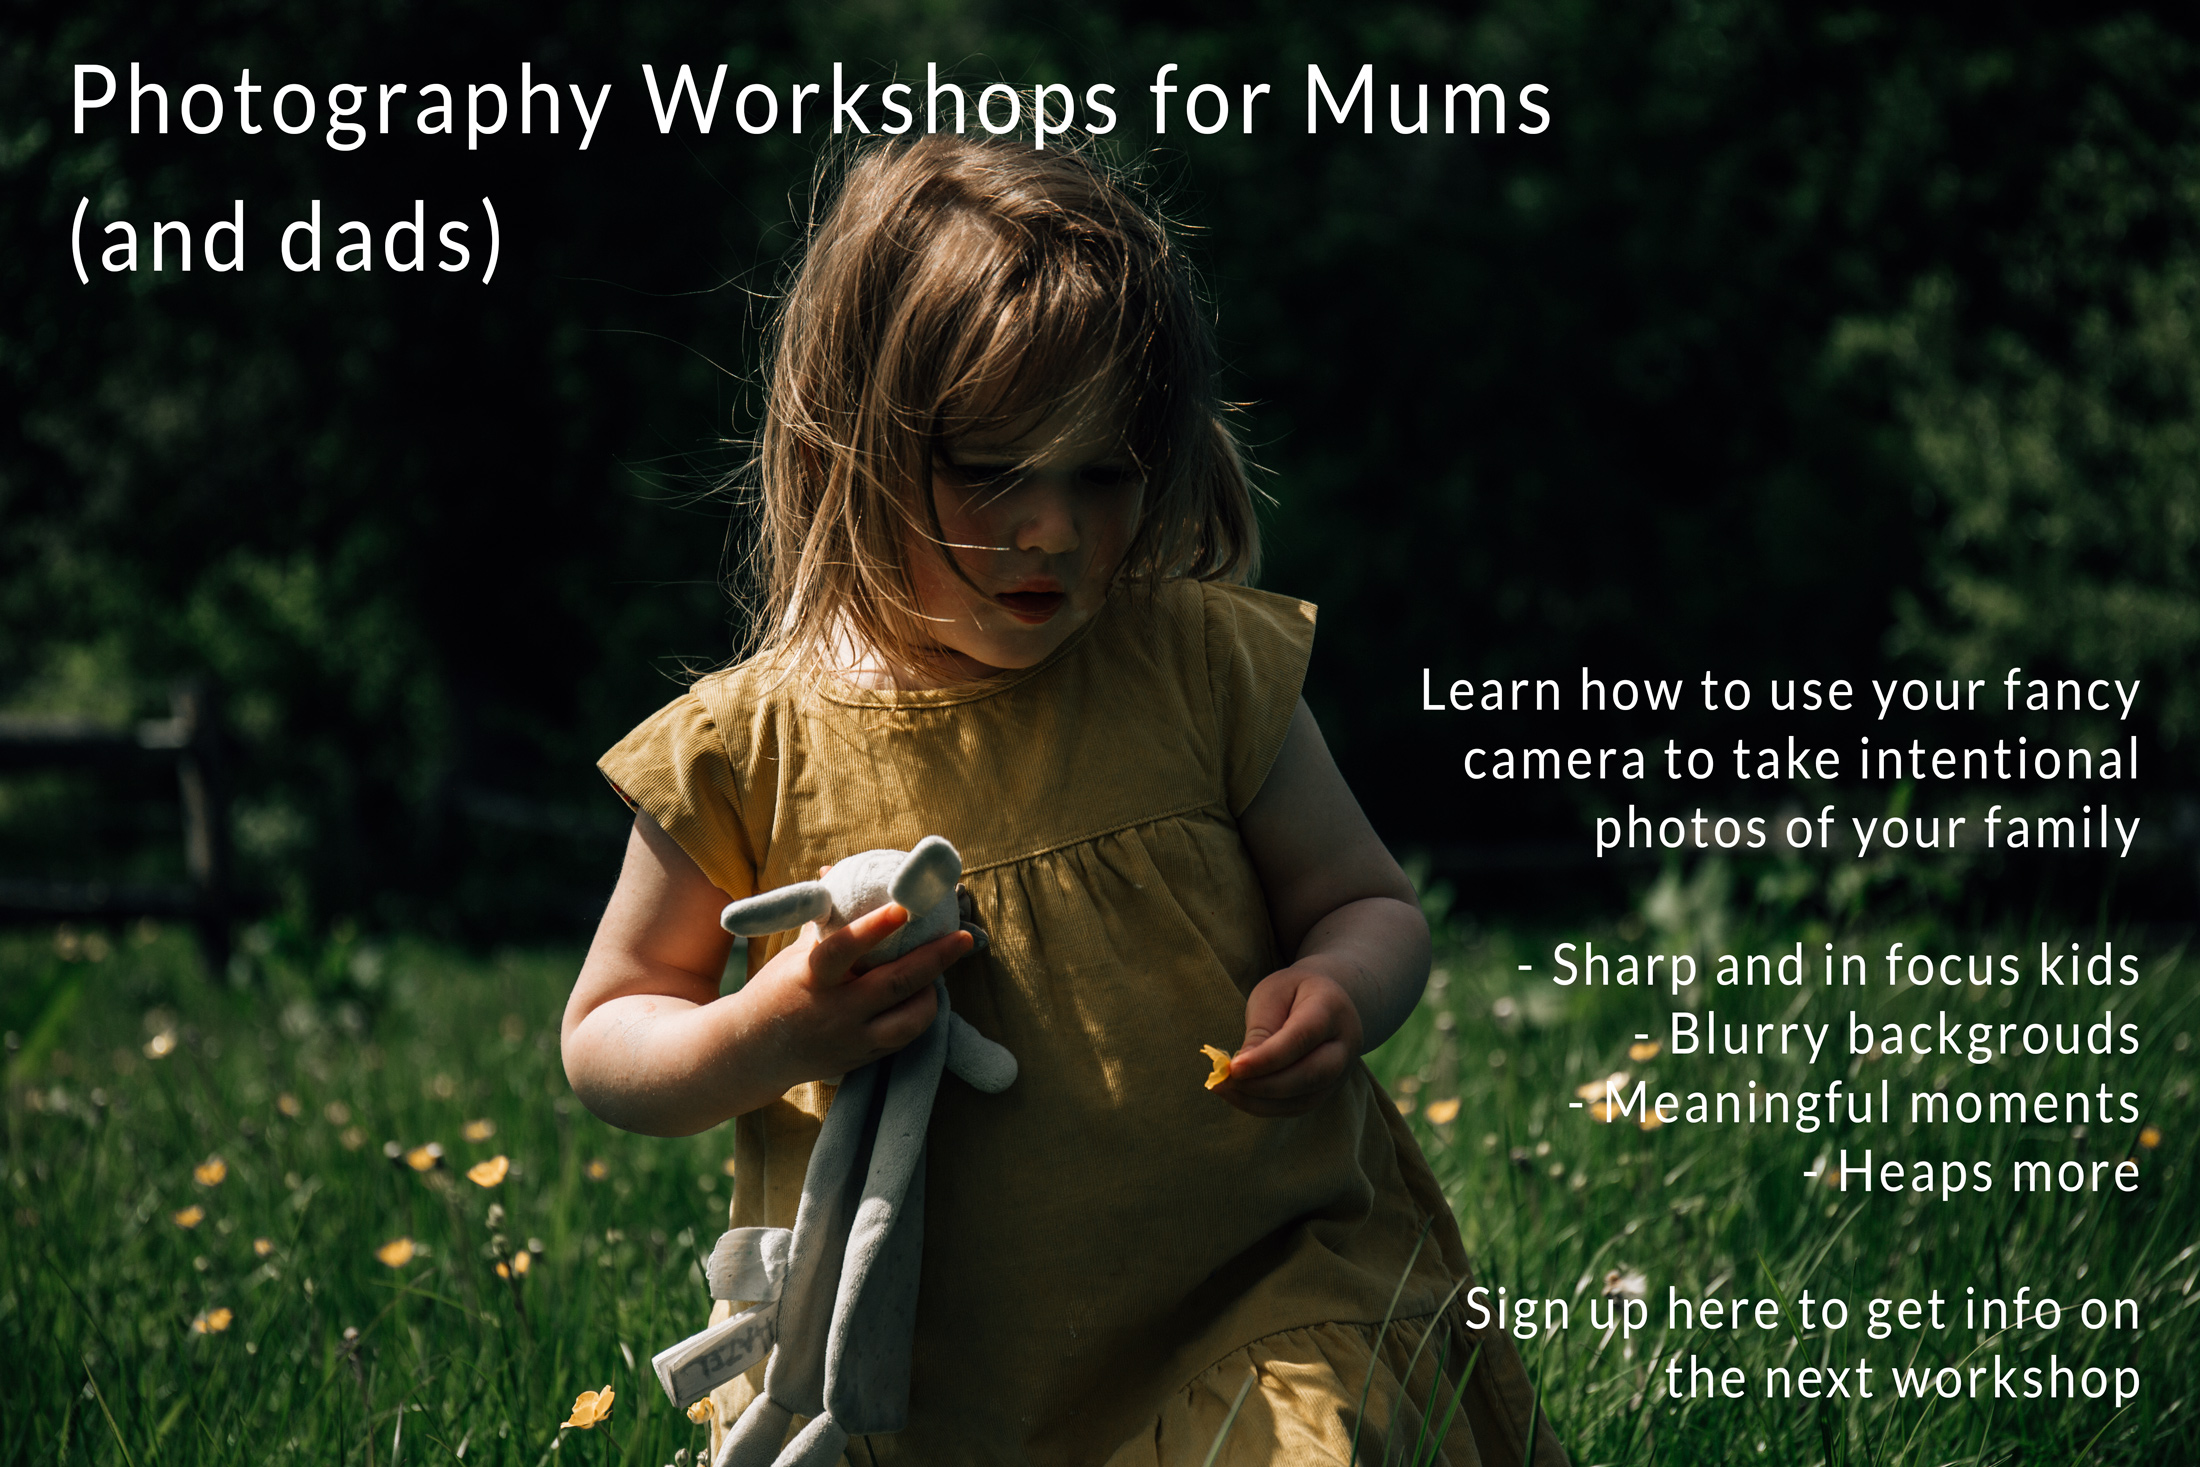 Finally make photos you're excited to print with that fancy camera you have. Sign up for details here. Autumn Workshops being scheduled now!